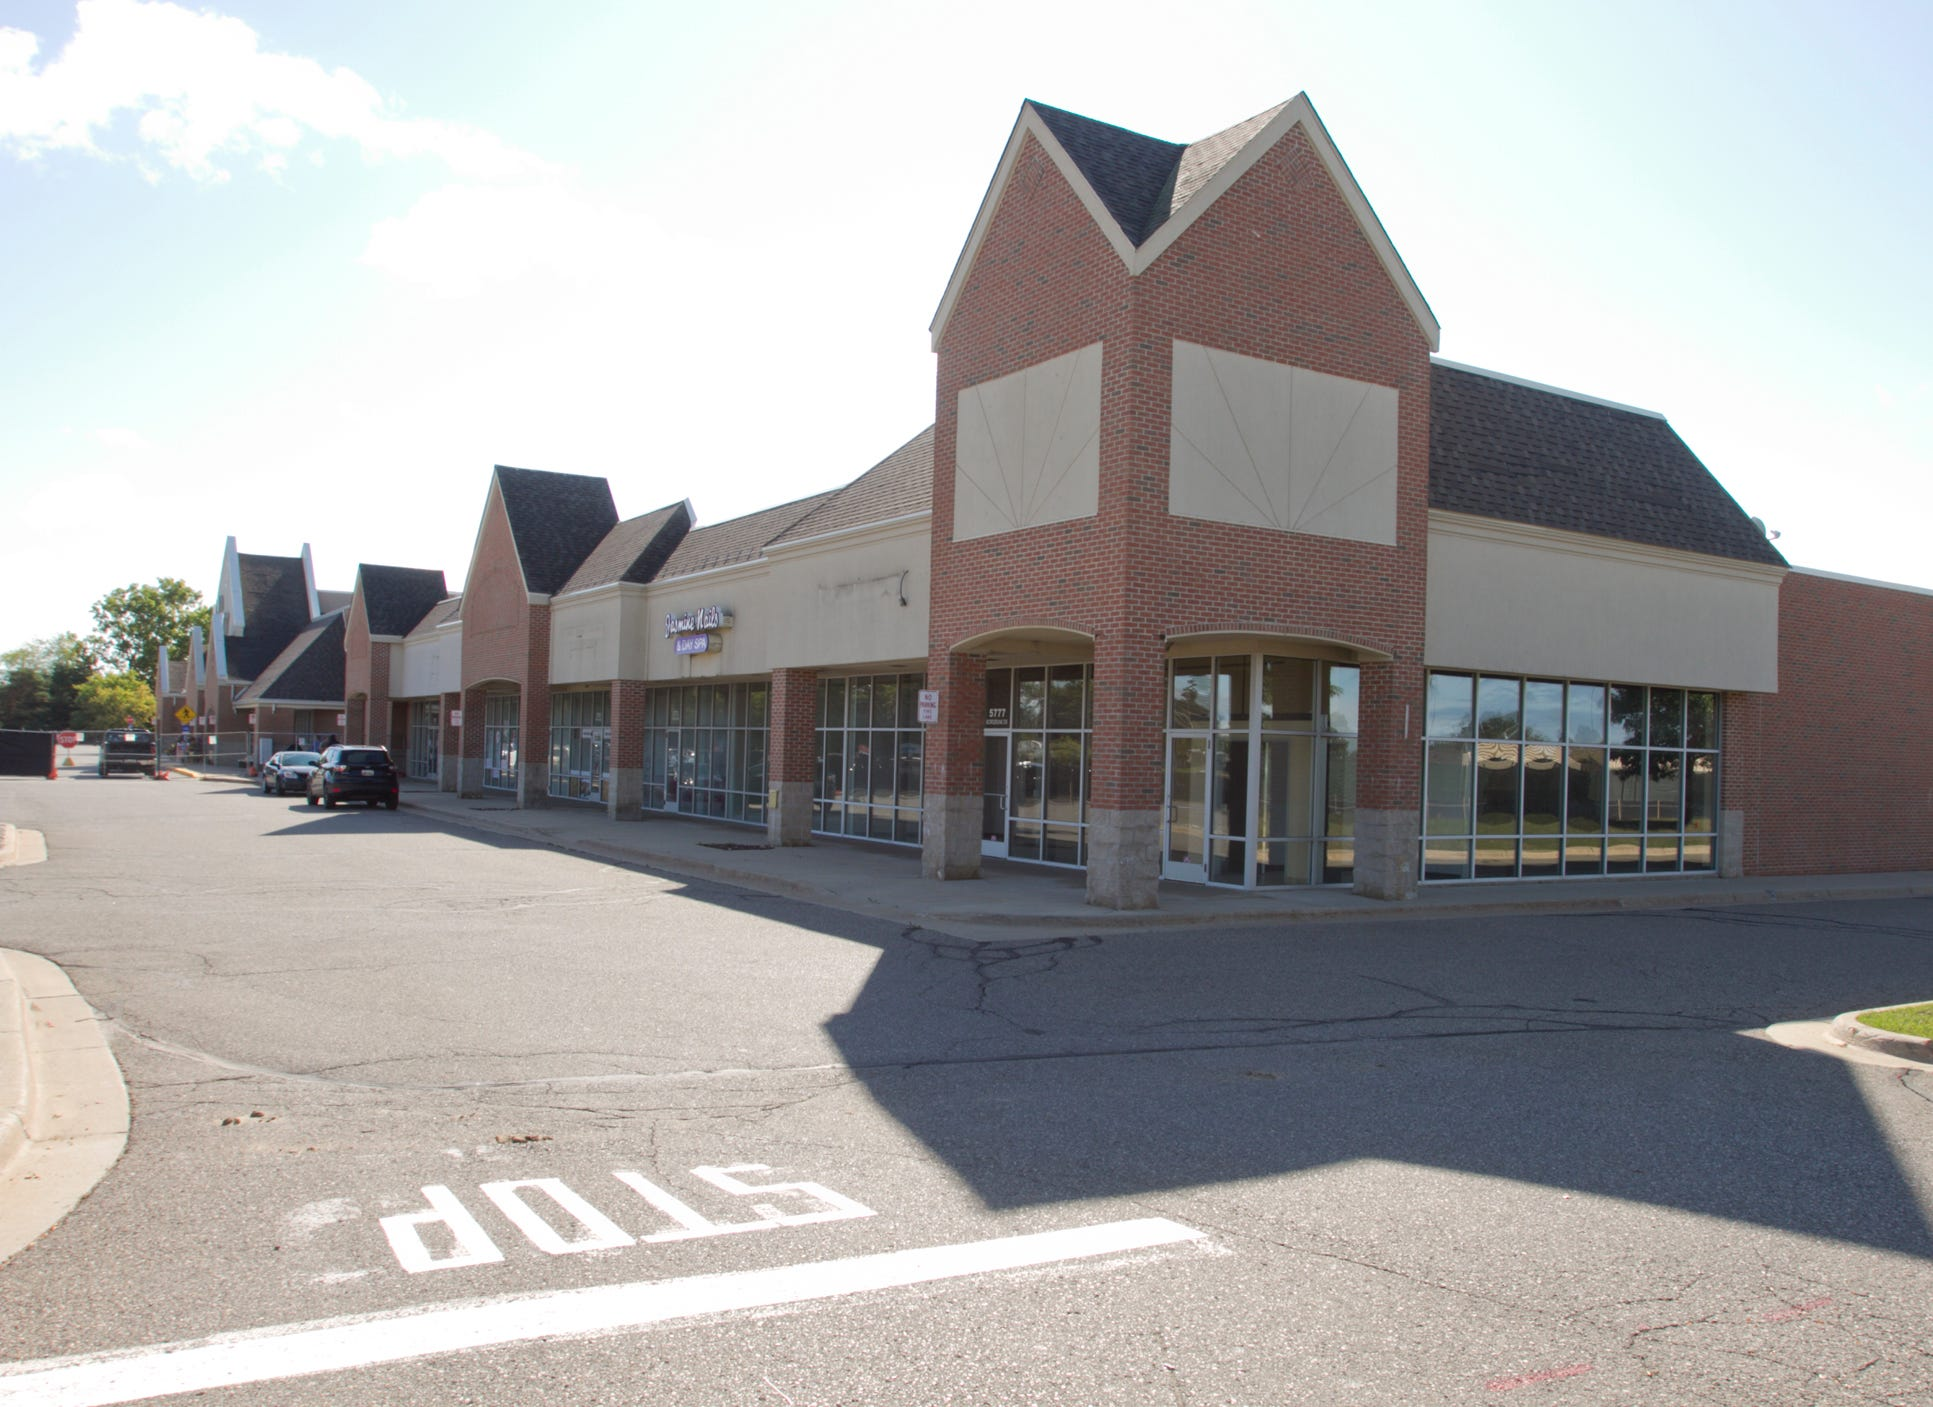 Businesses West Of The Brighton Kroger Sit Vacant Wednesday,